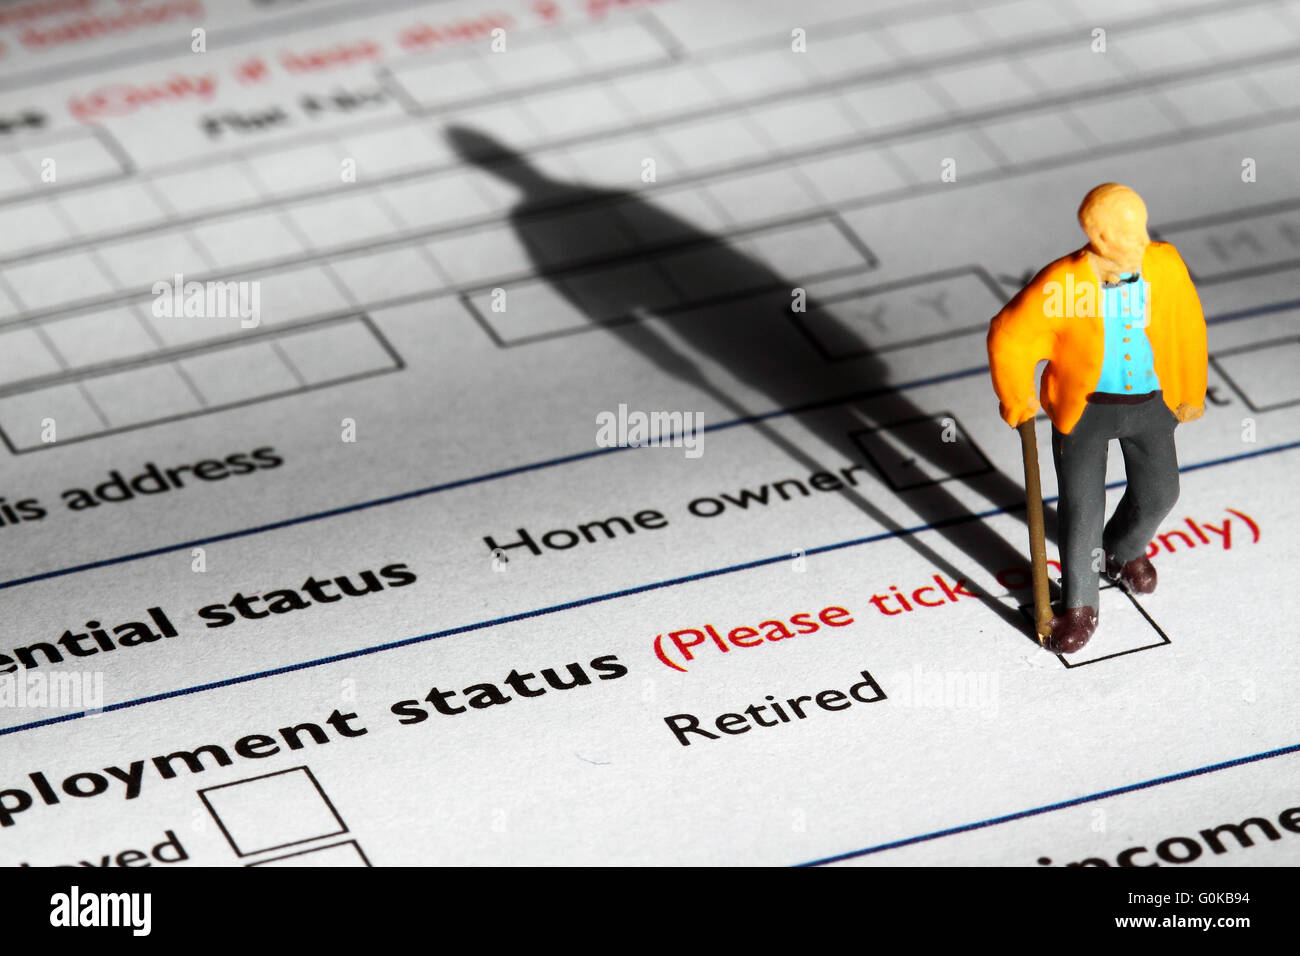 Miniature model pensioner standing on an application form - Stock Image